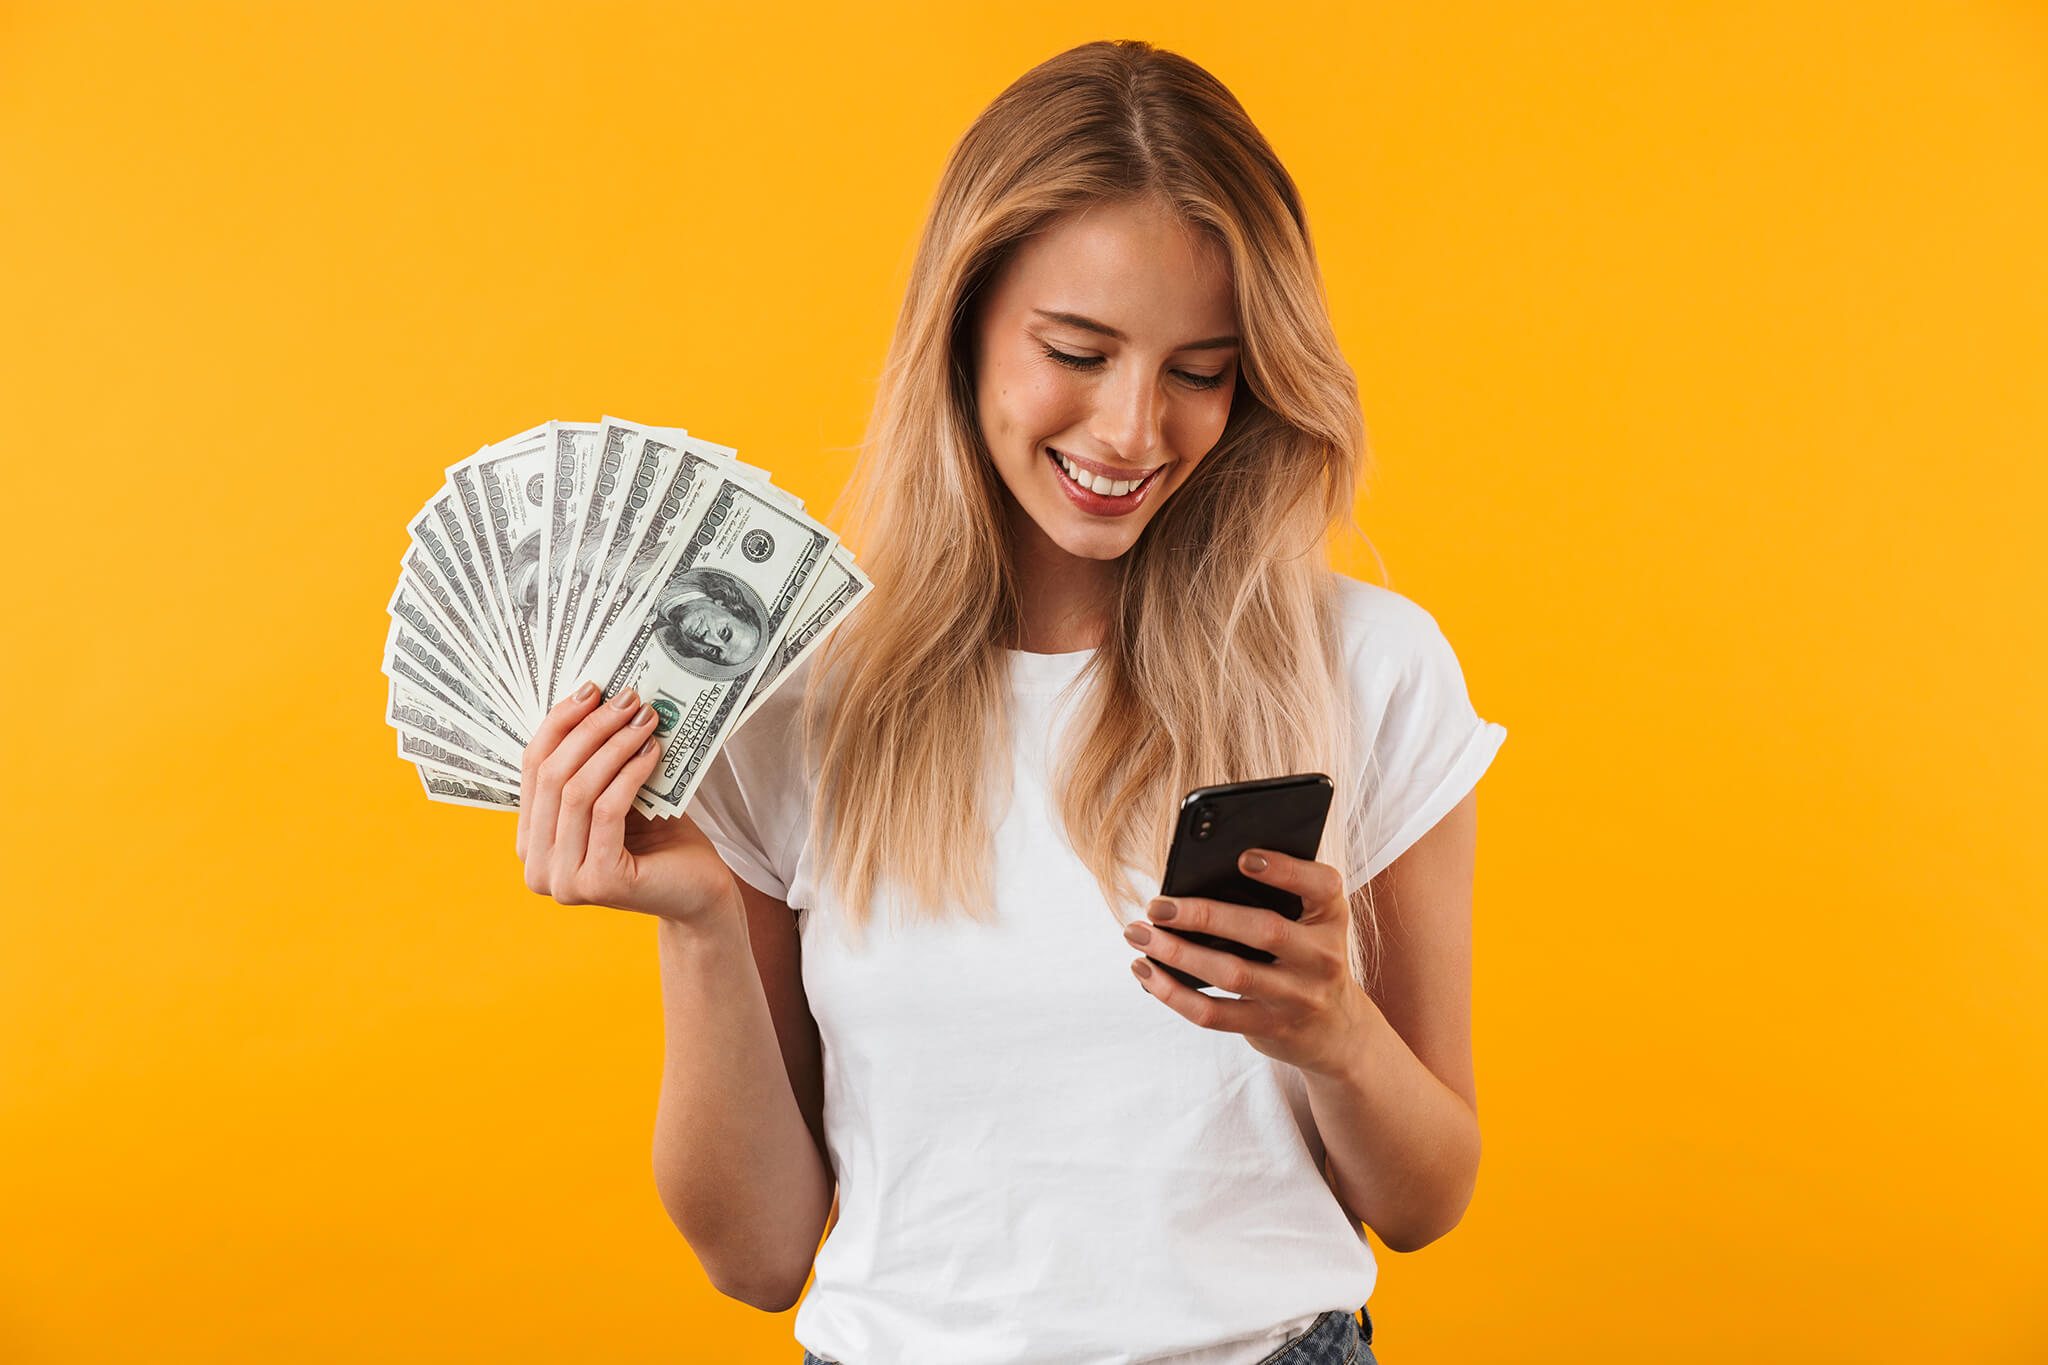 A woman with money in her right hand looking at her smartphone in her left hand